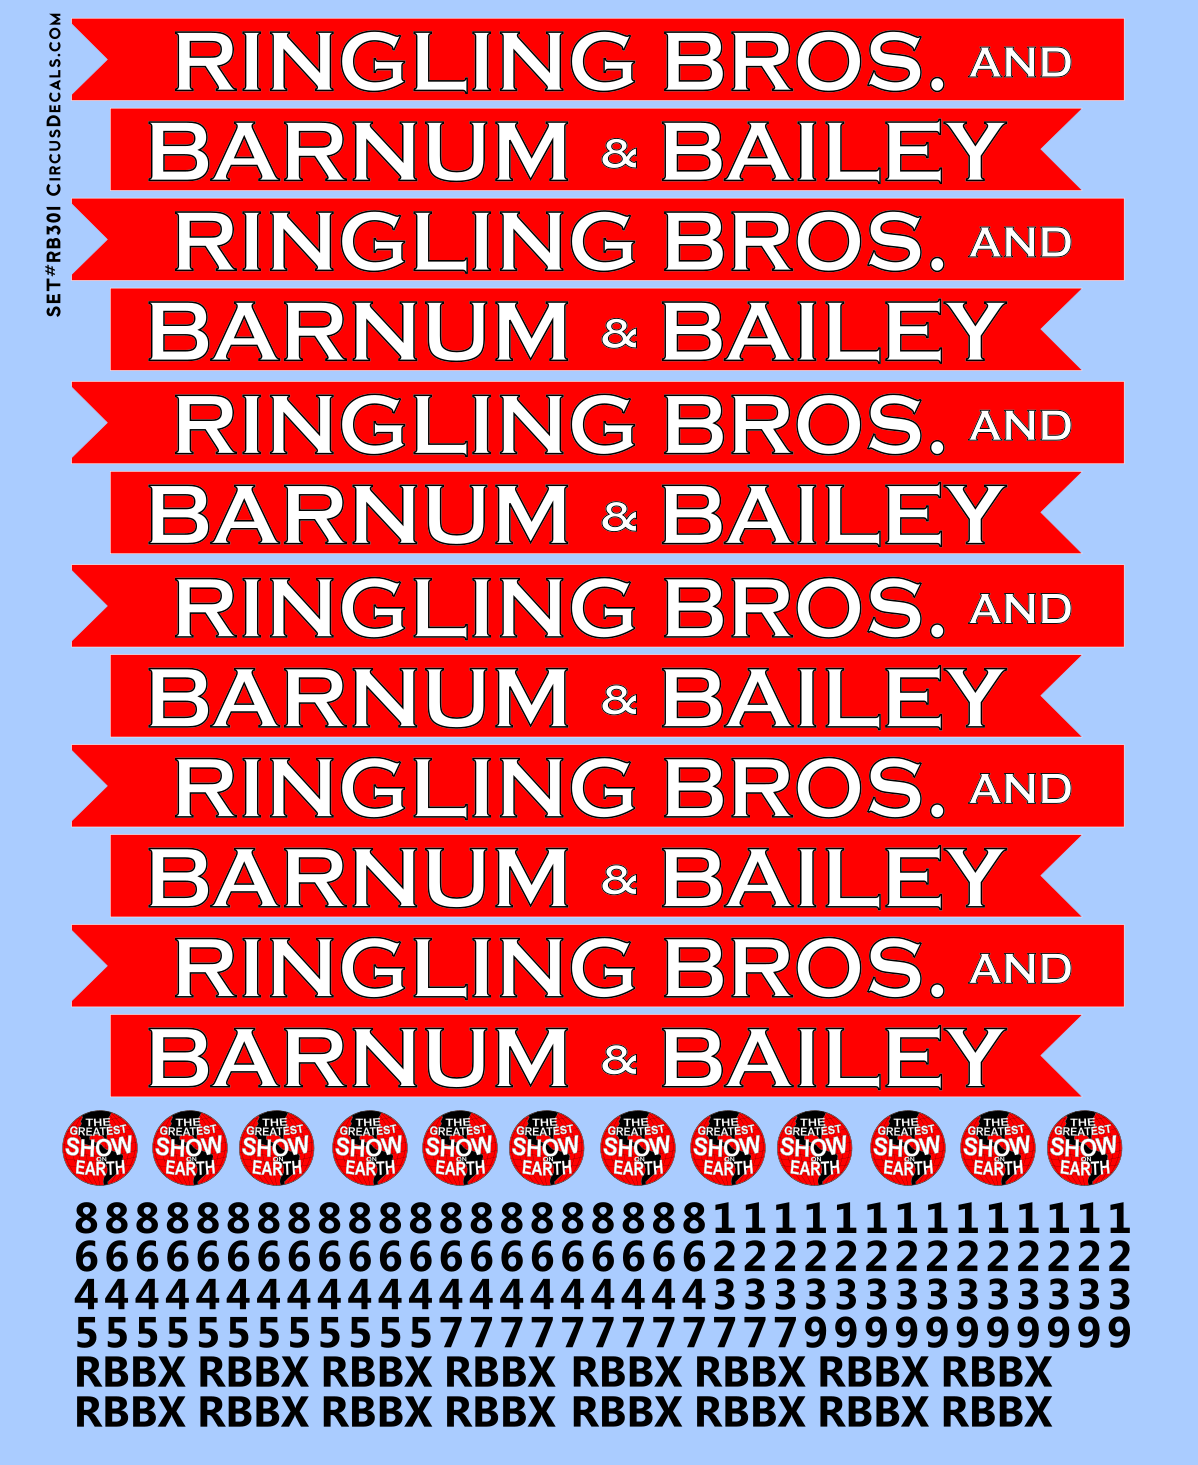 RB302 Ringling Bros. & Barnum Bailey Blue Unit RBBB Modern Circus Train Decals O Scale